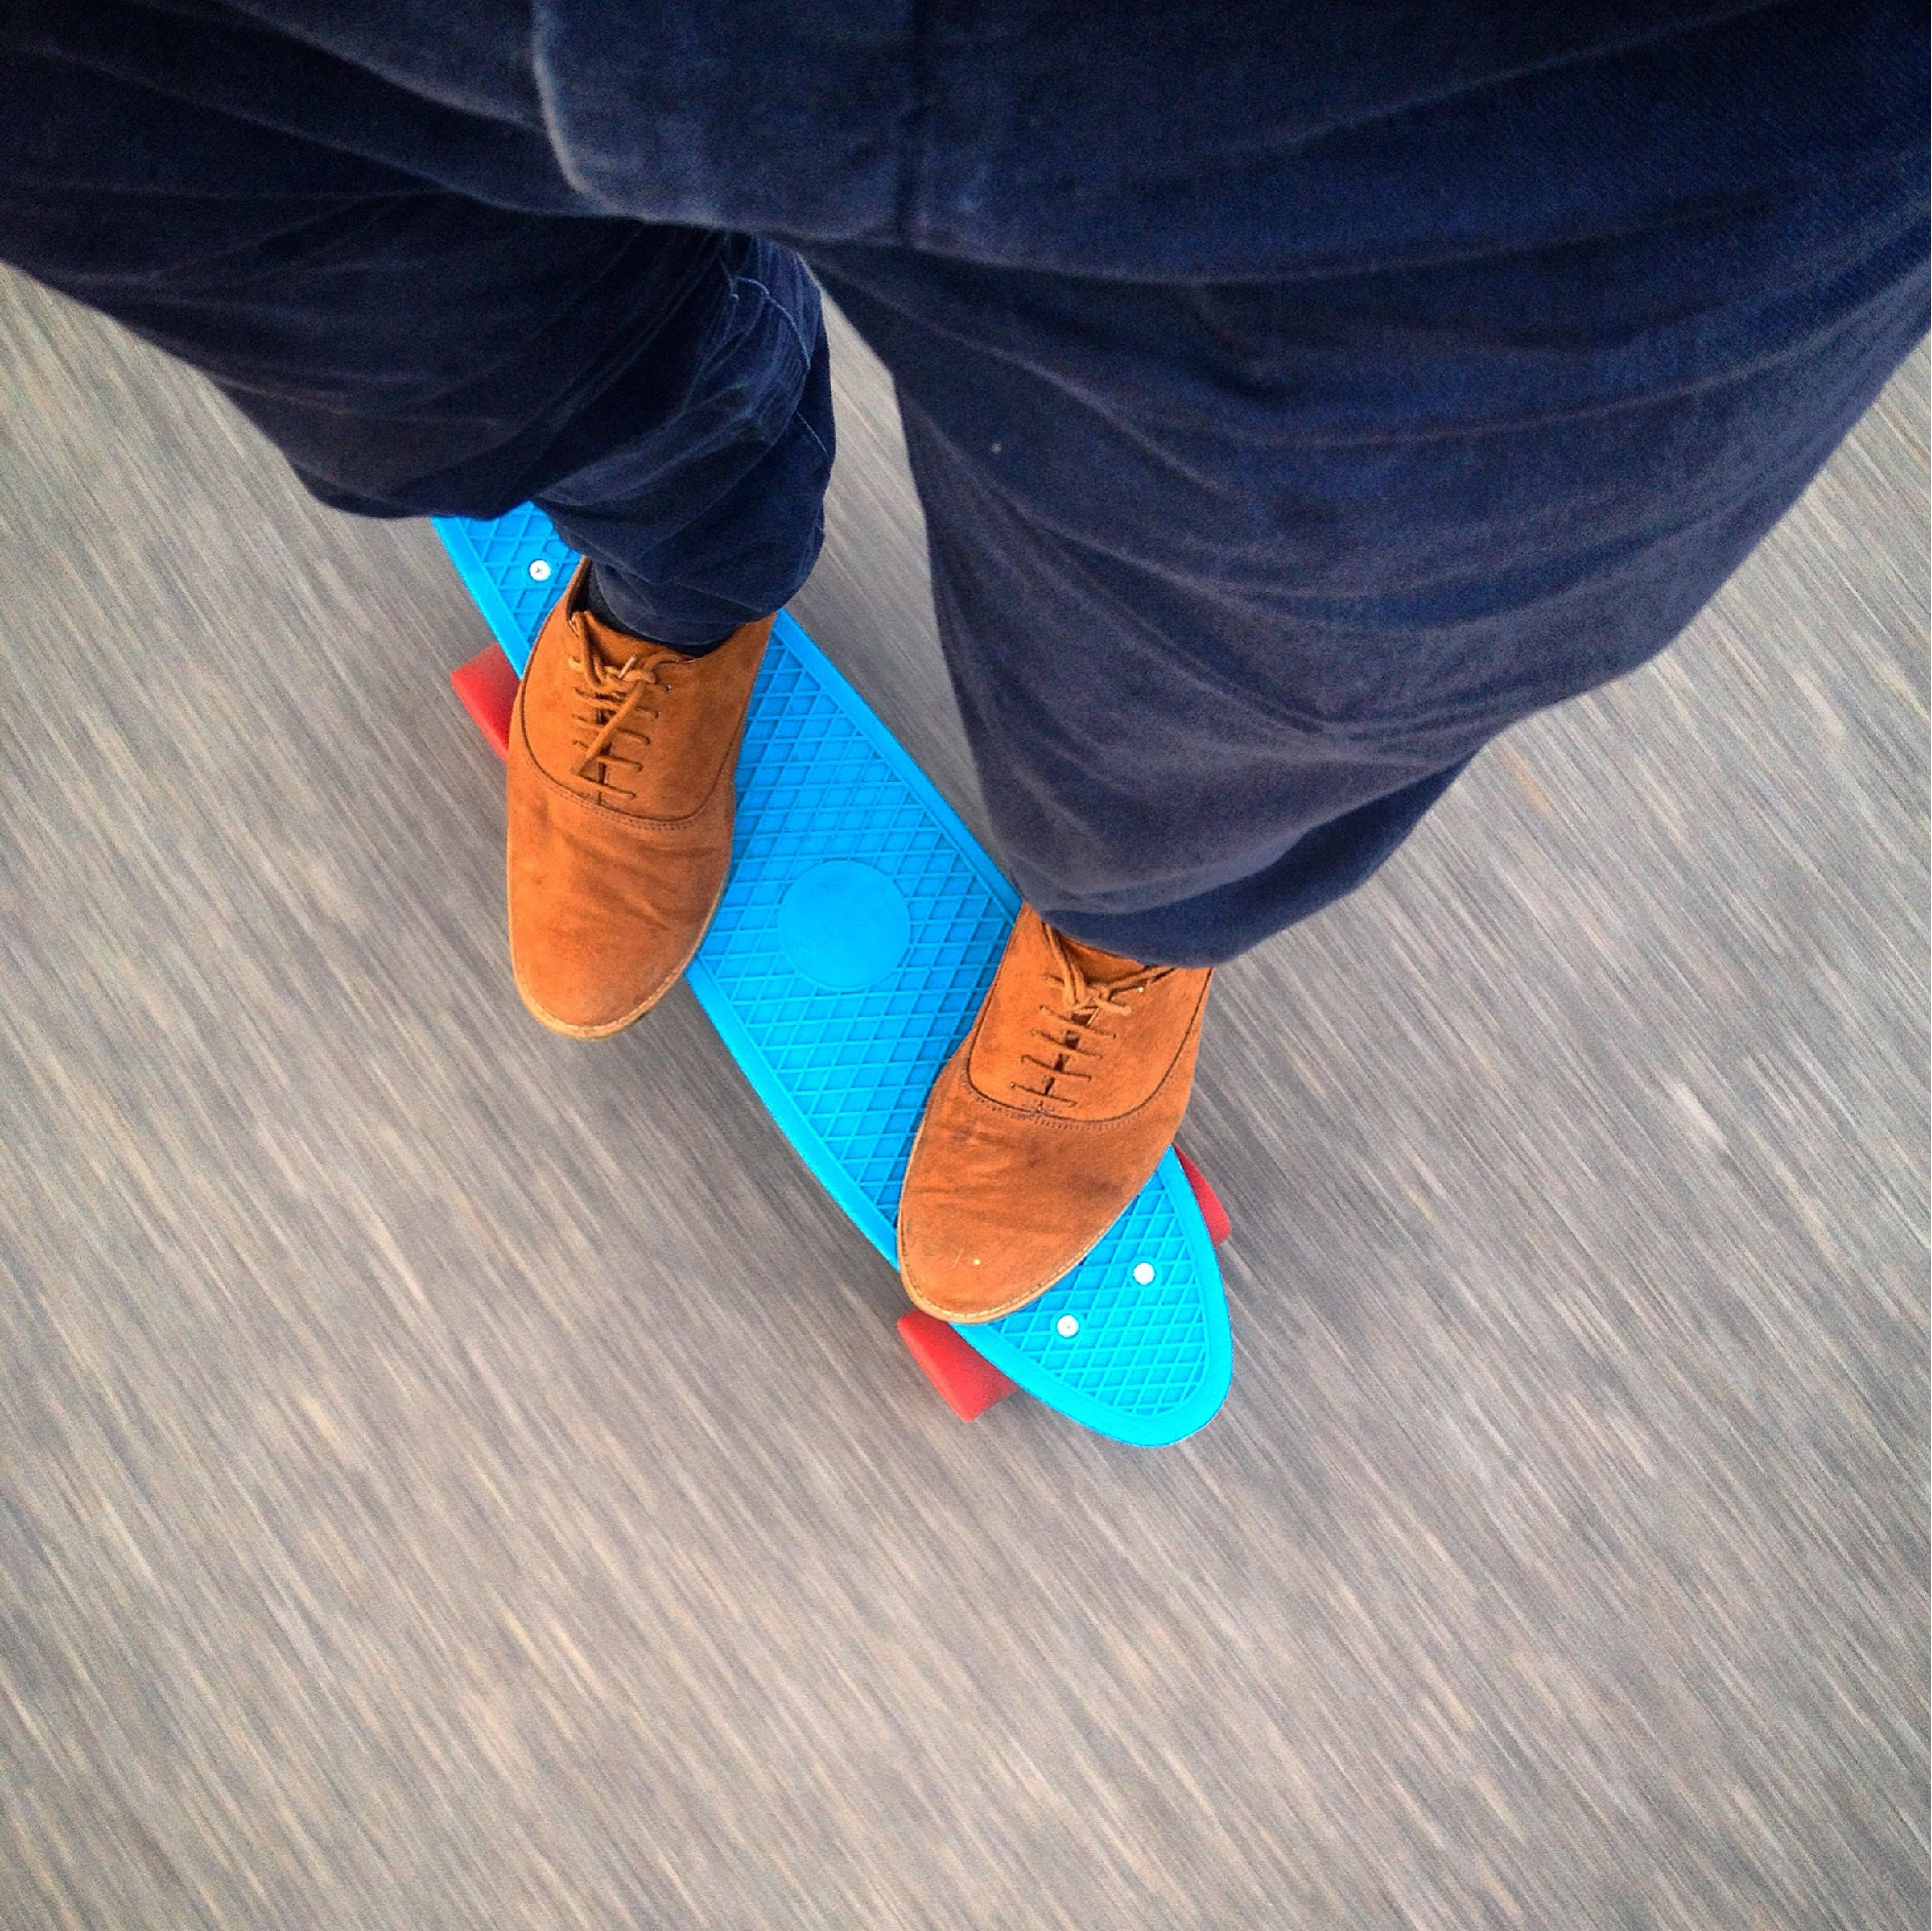 Like penny boarding to work in the early morning hours